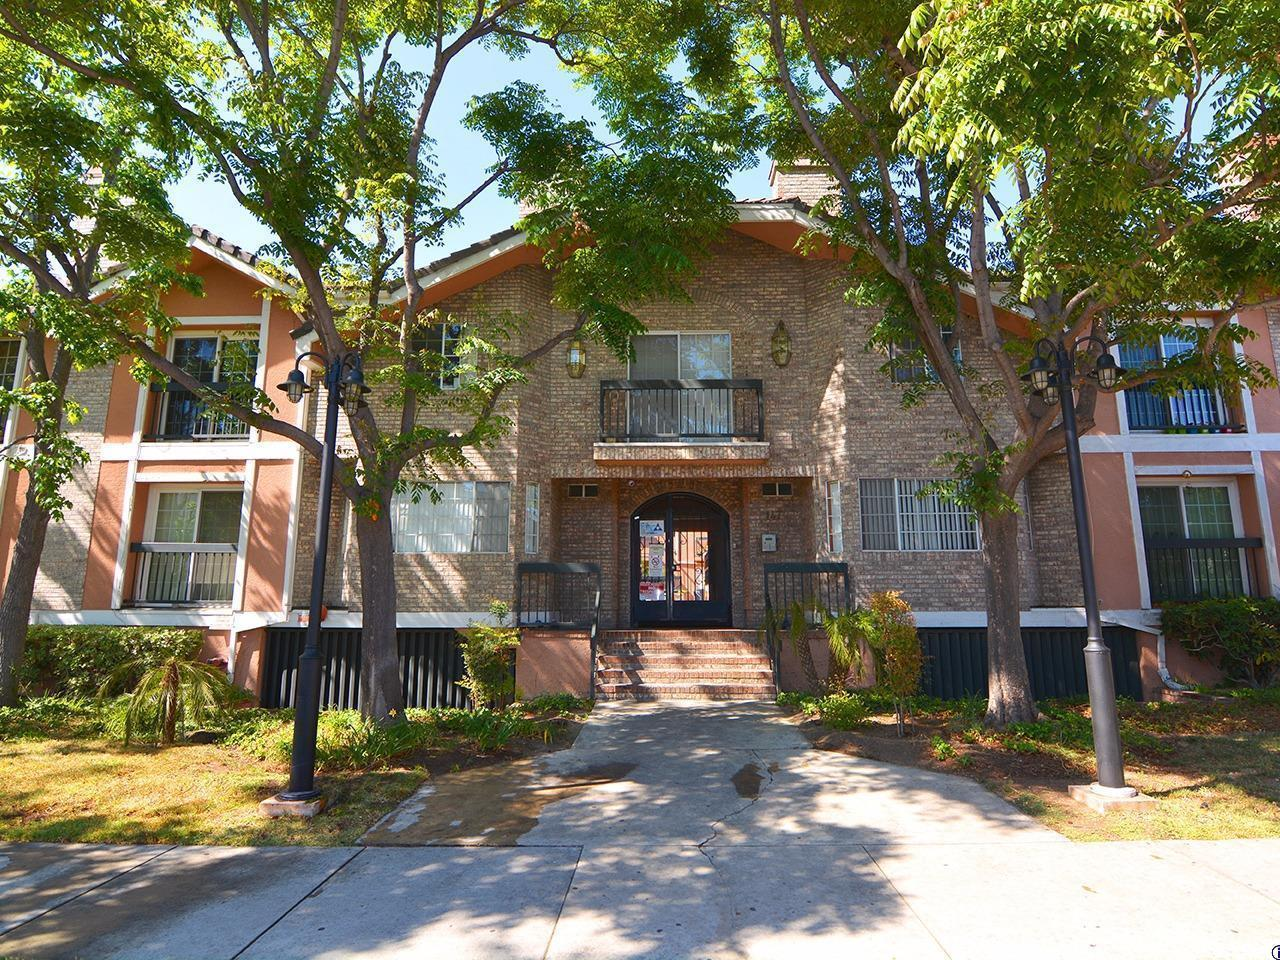 147 WEST ACACIA AVENUE #141, Glendale, CA 91204